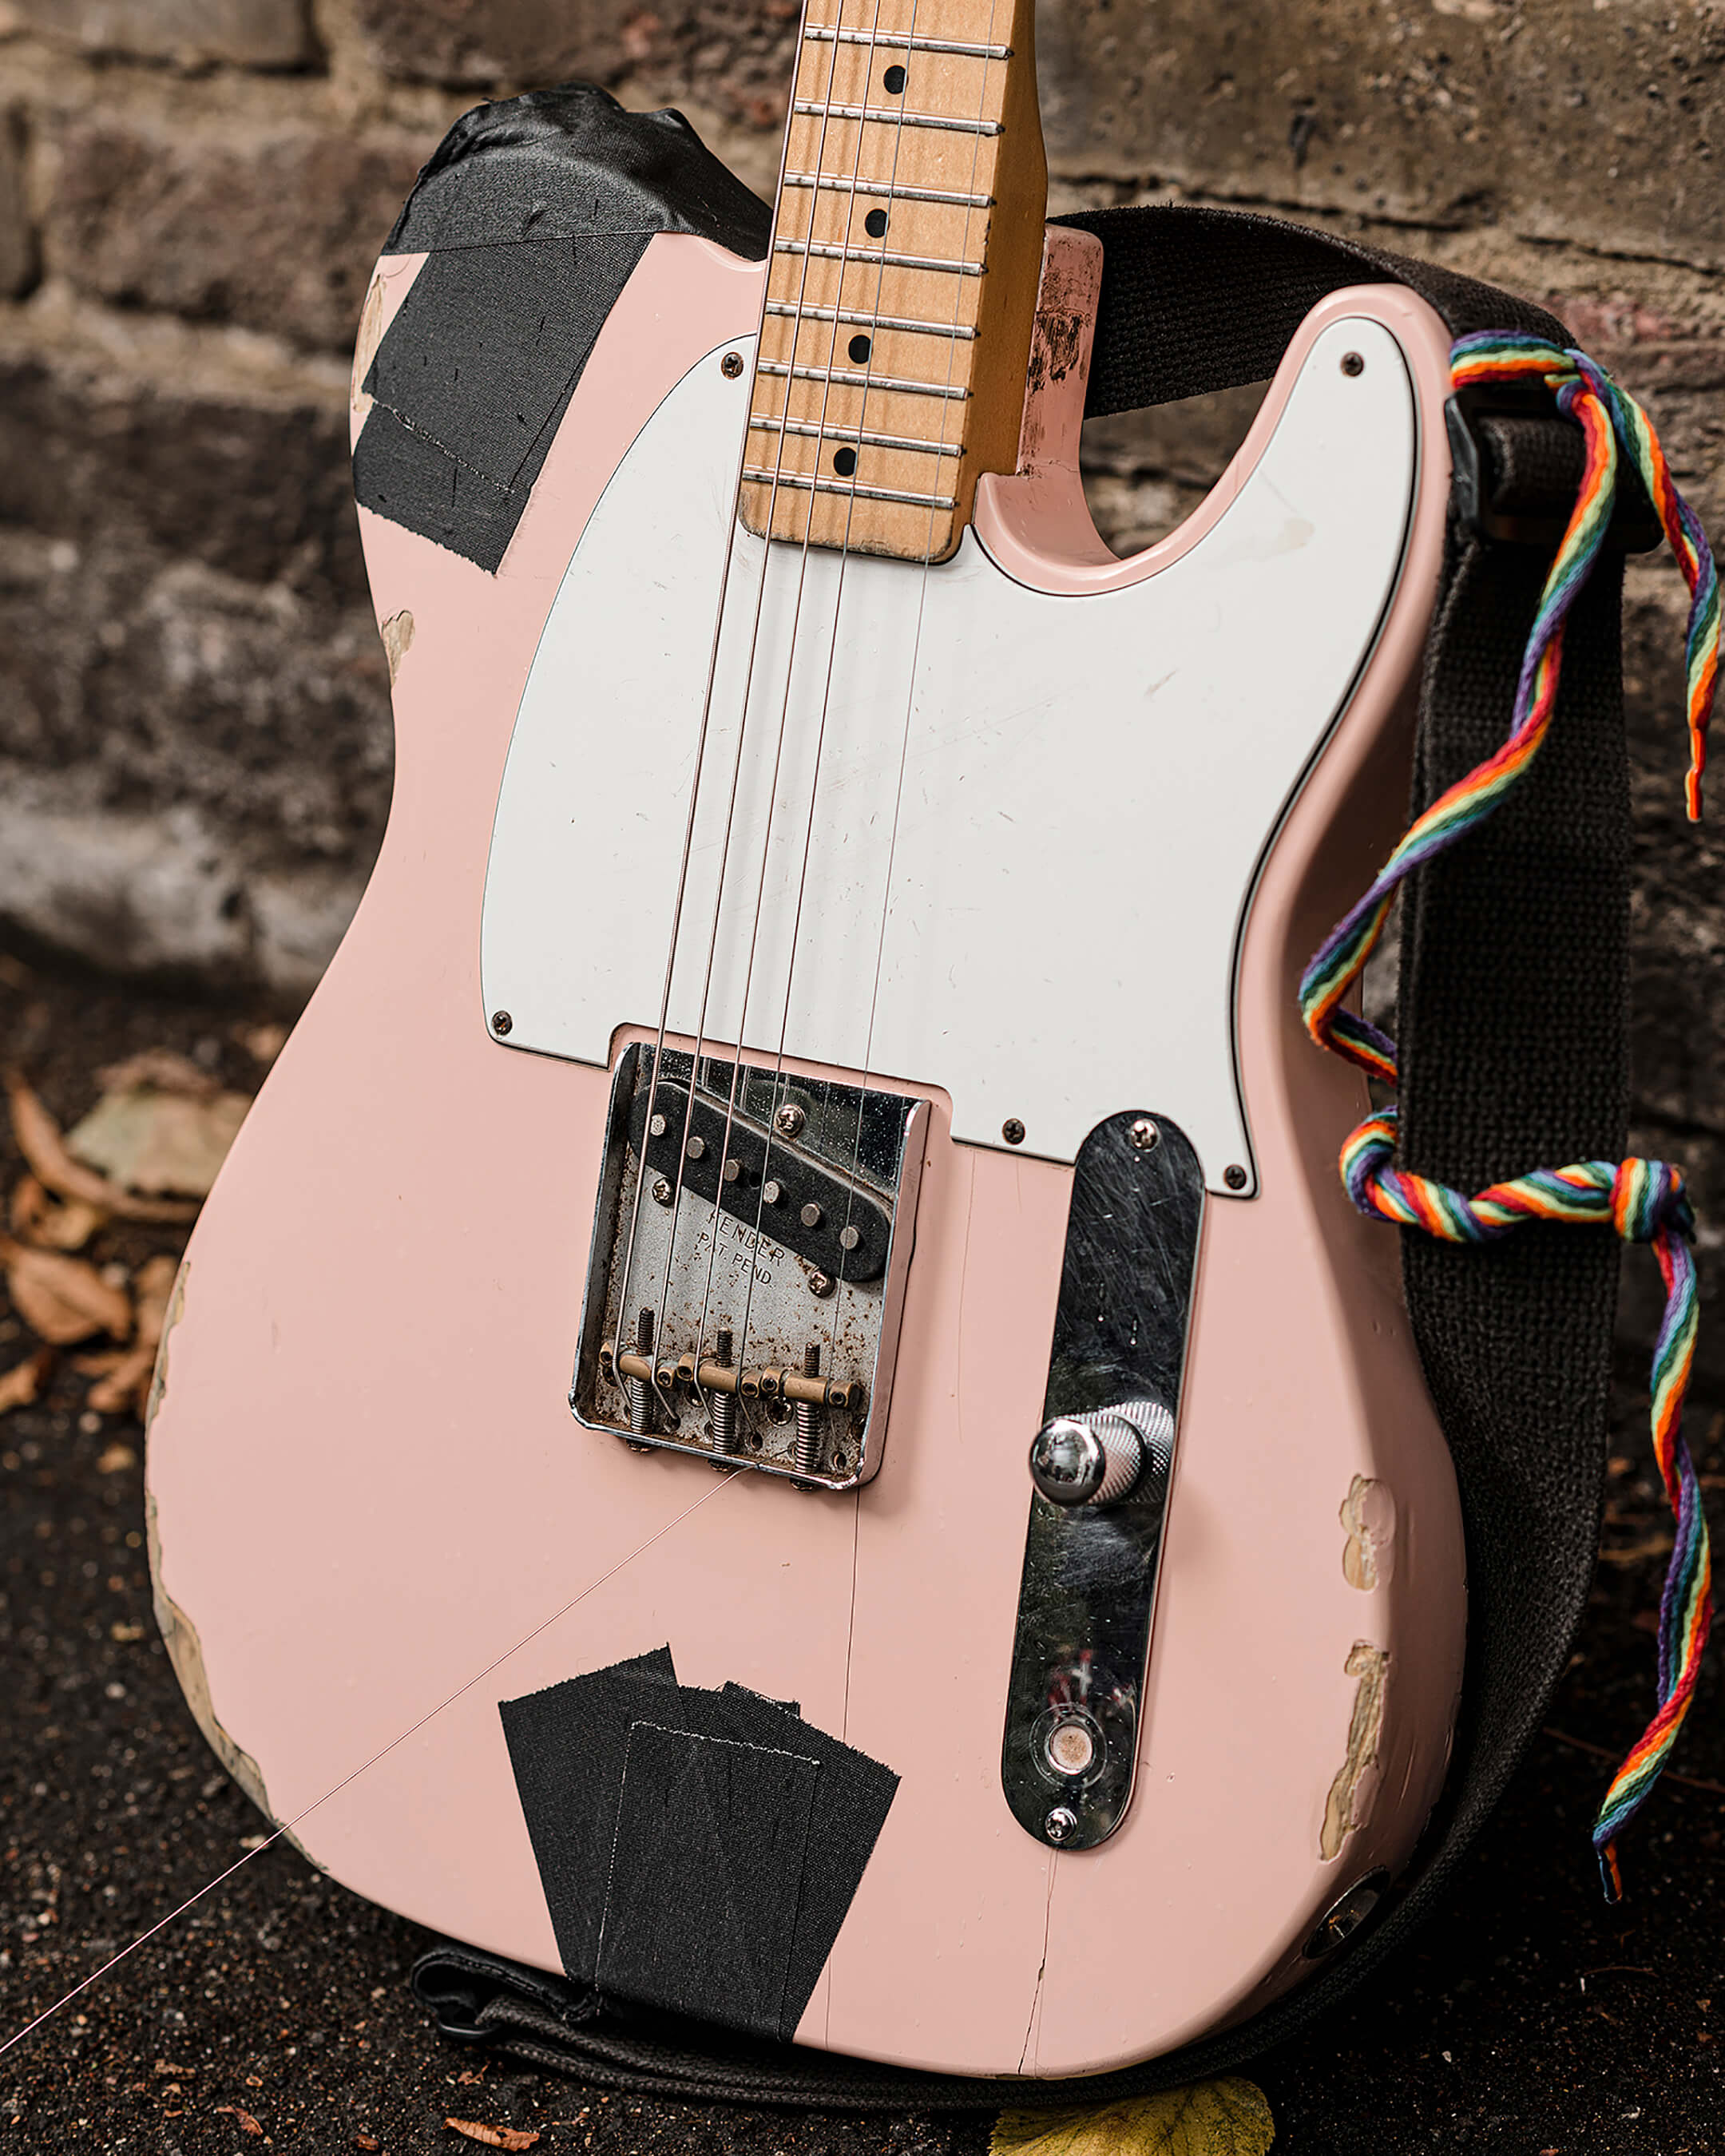 Idles - Lee Kiernan's Guitar